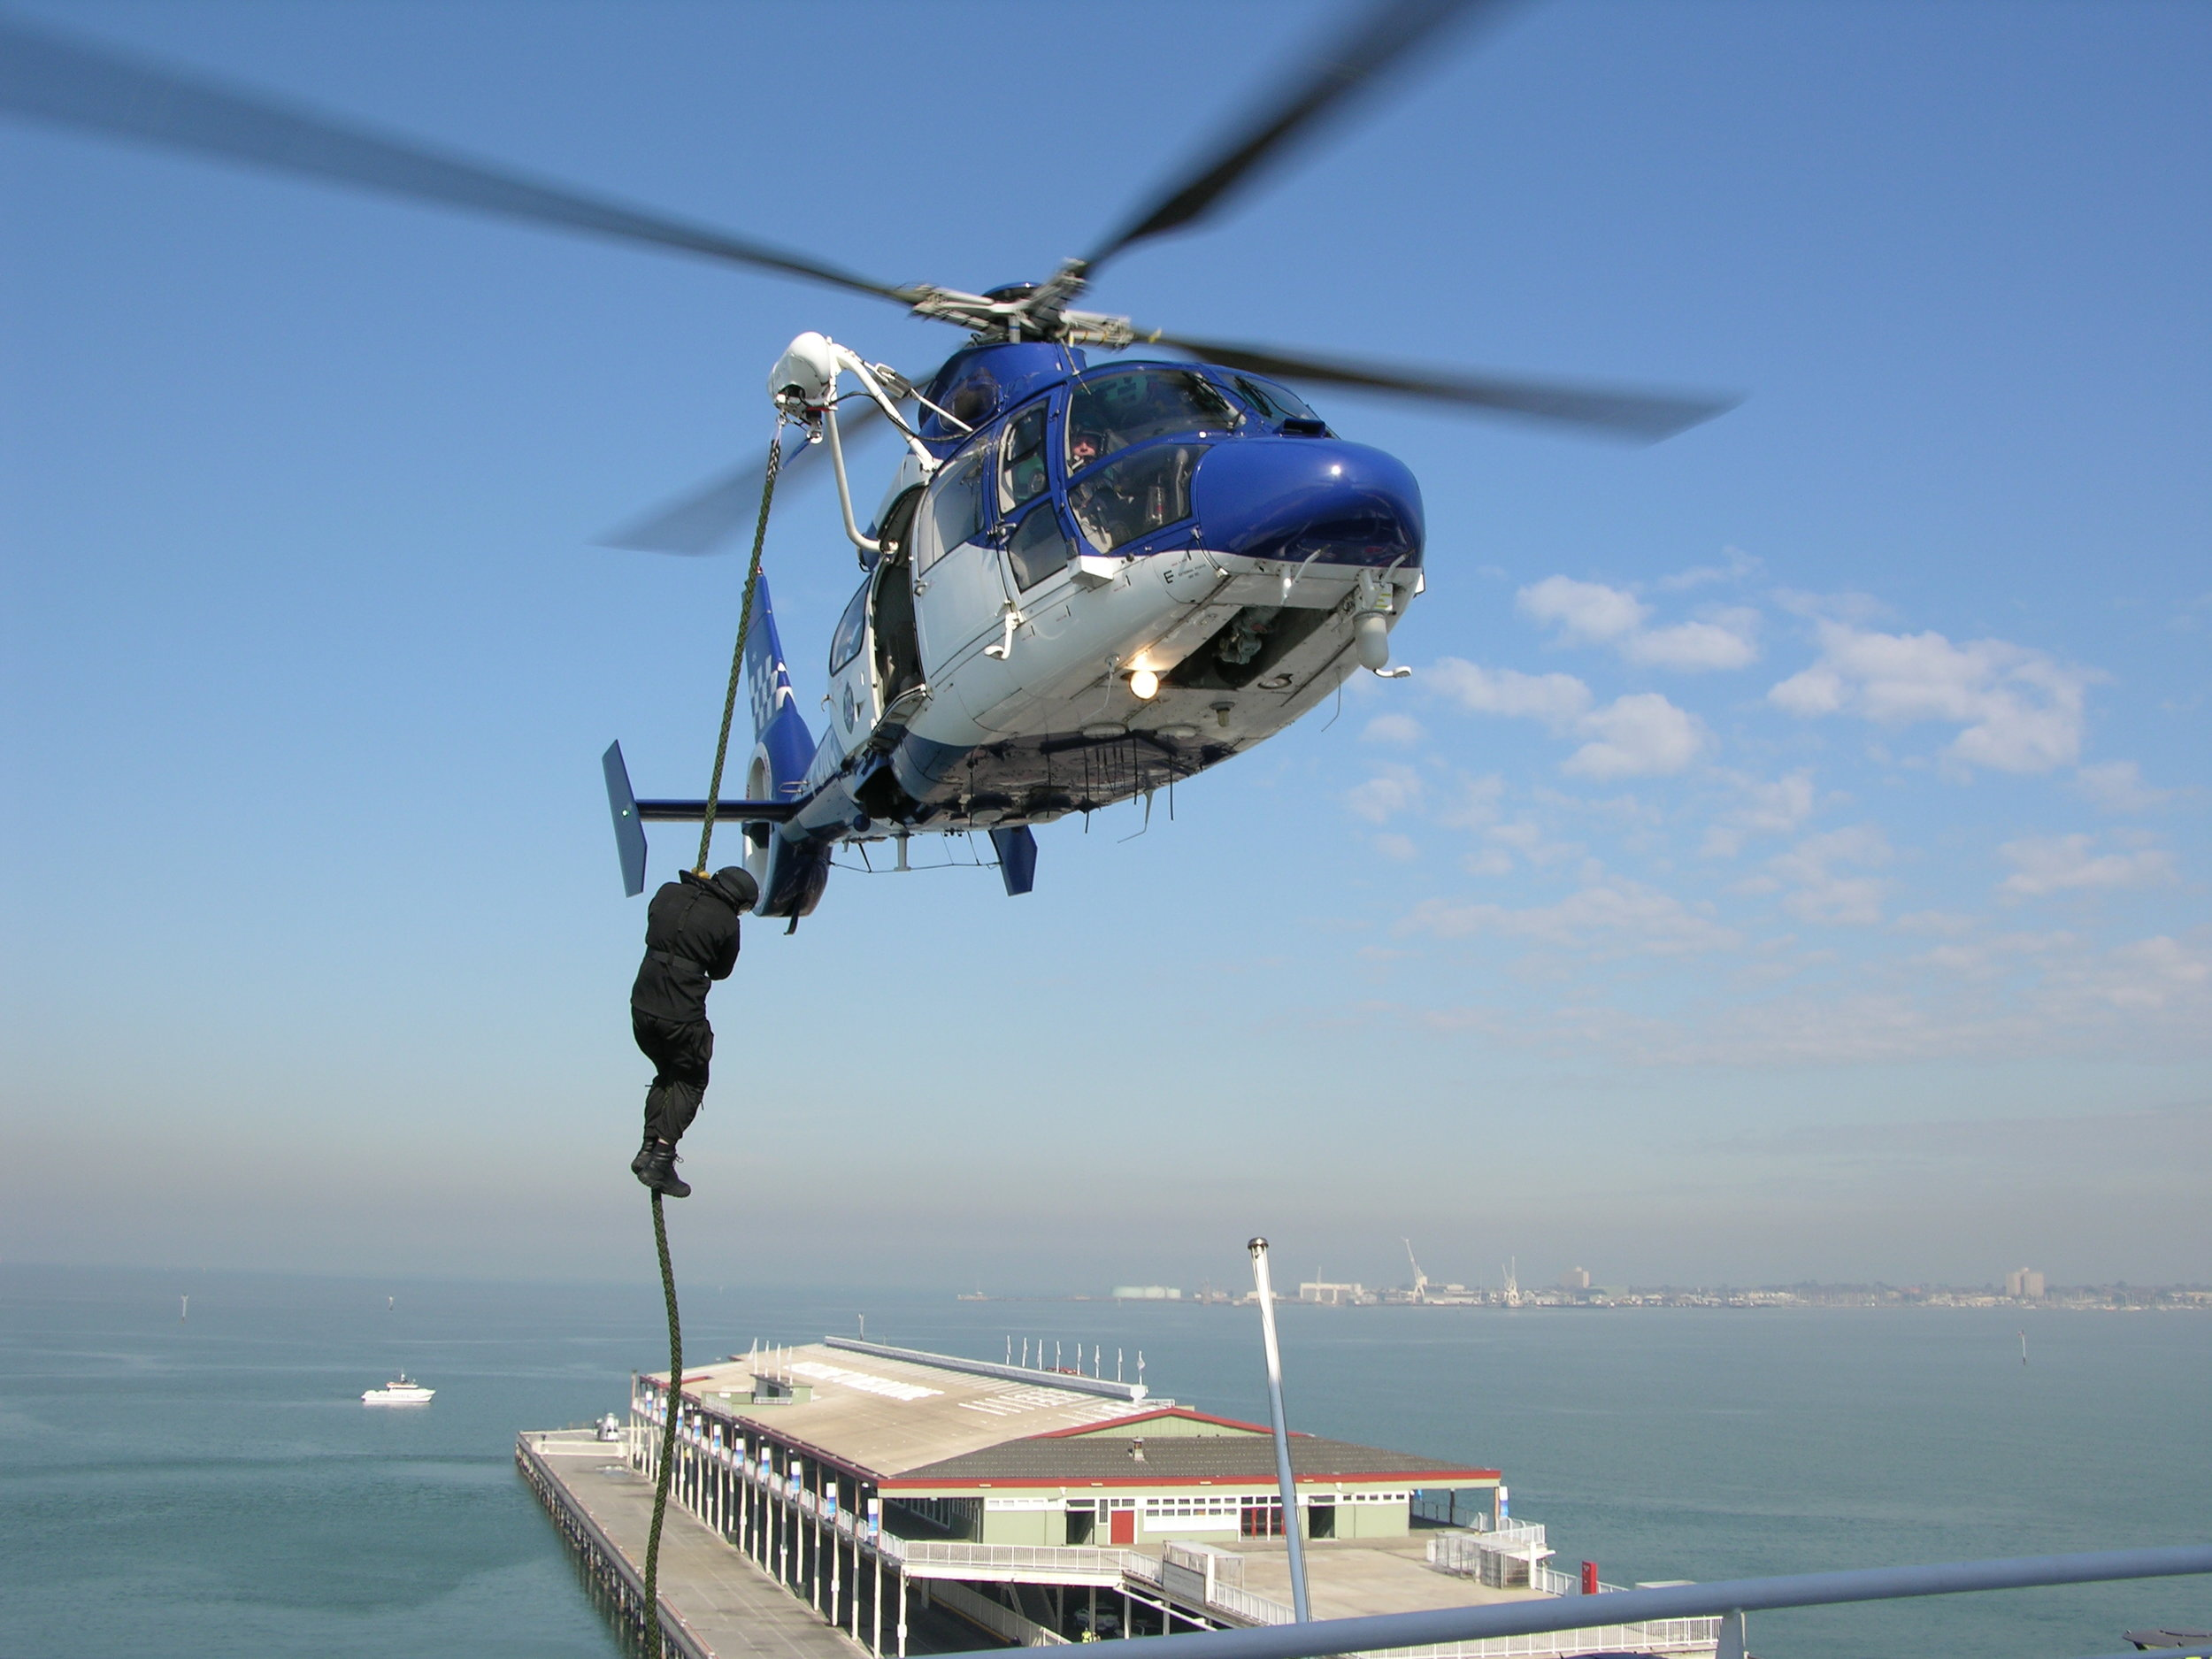 Police Air Wing - We have previously worked on police conversions for aircraft including AS365, EC145, EC130B4, BK117 and AS350. We are experienced in providing reliable design solutions for:- Night Vision Goggle (NVG) compatible lighting - Fast roping systems- Rappelling systems- Audio / Communications system design- FLIR camera installations- Searchlight installations- Workstation design and manufacture- Weapons mounts and stowage racks